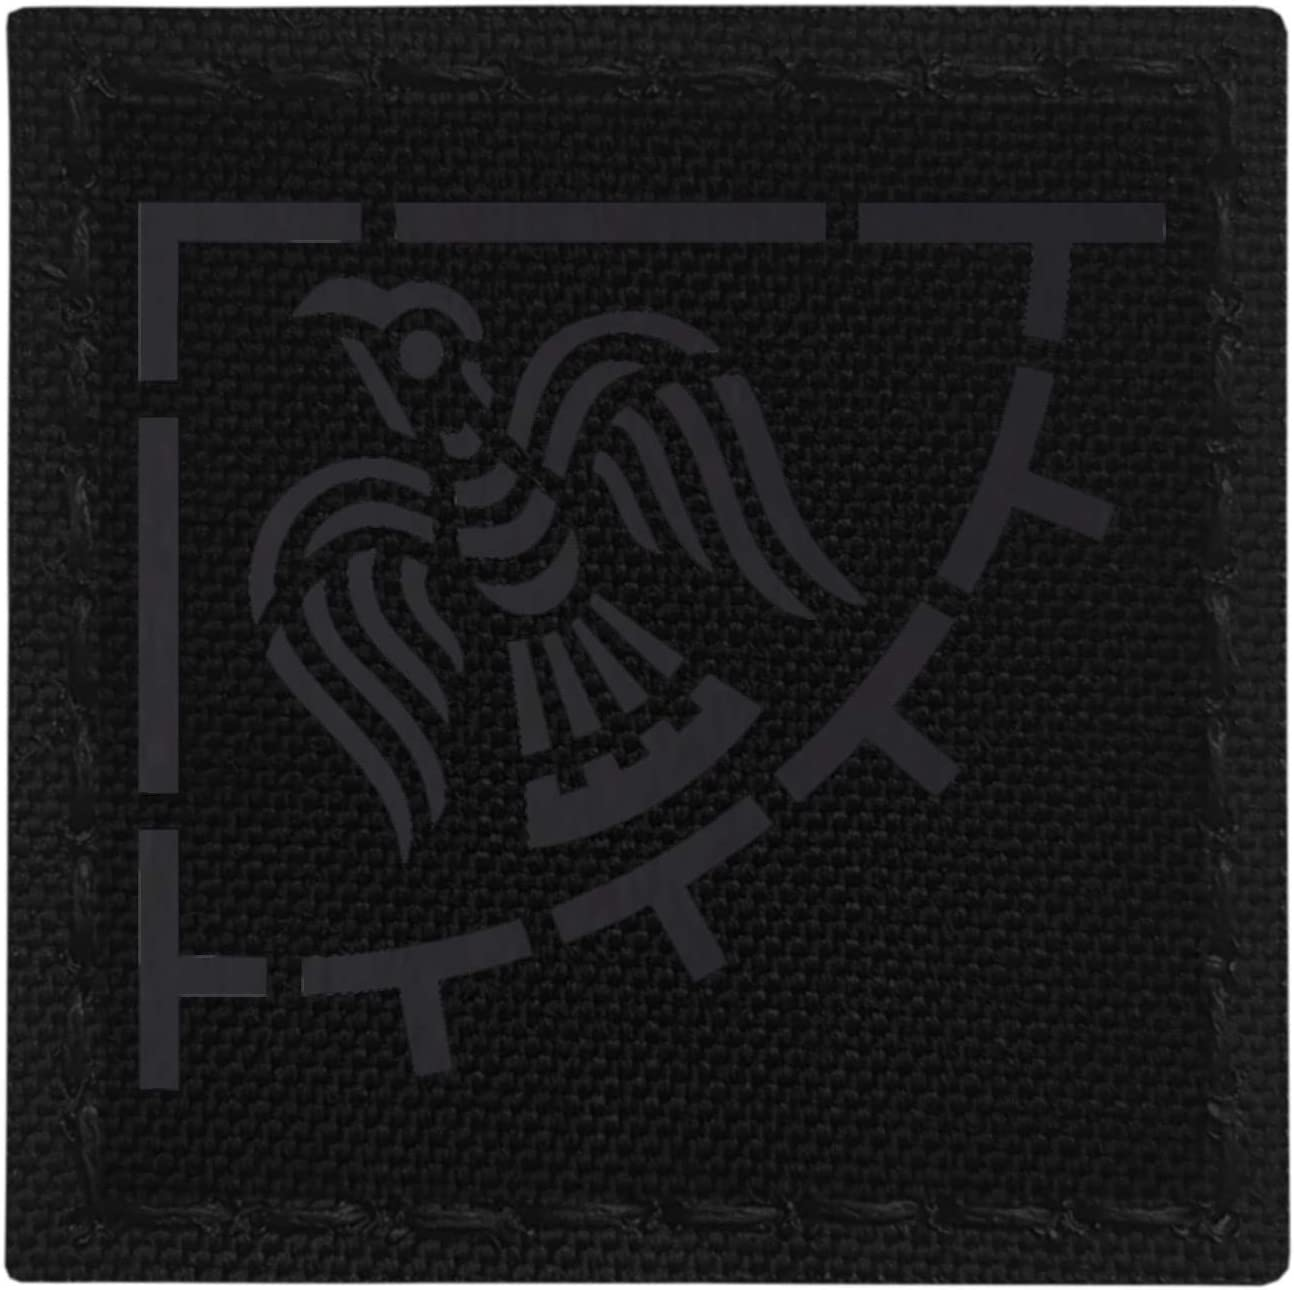 Blackout IR Raven Banner Viking 3x3 Norse Icelandic Heathen Infrared IFF Tactical Morale Hook&Loop Patch